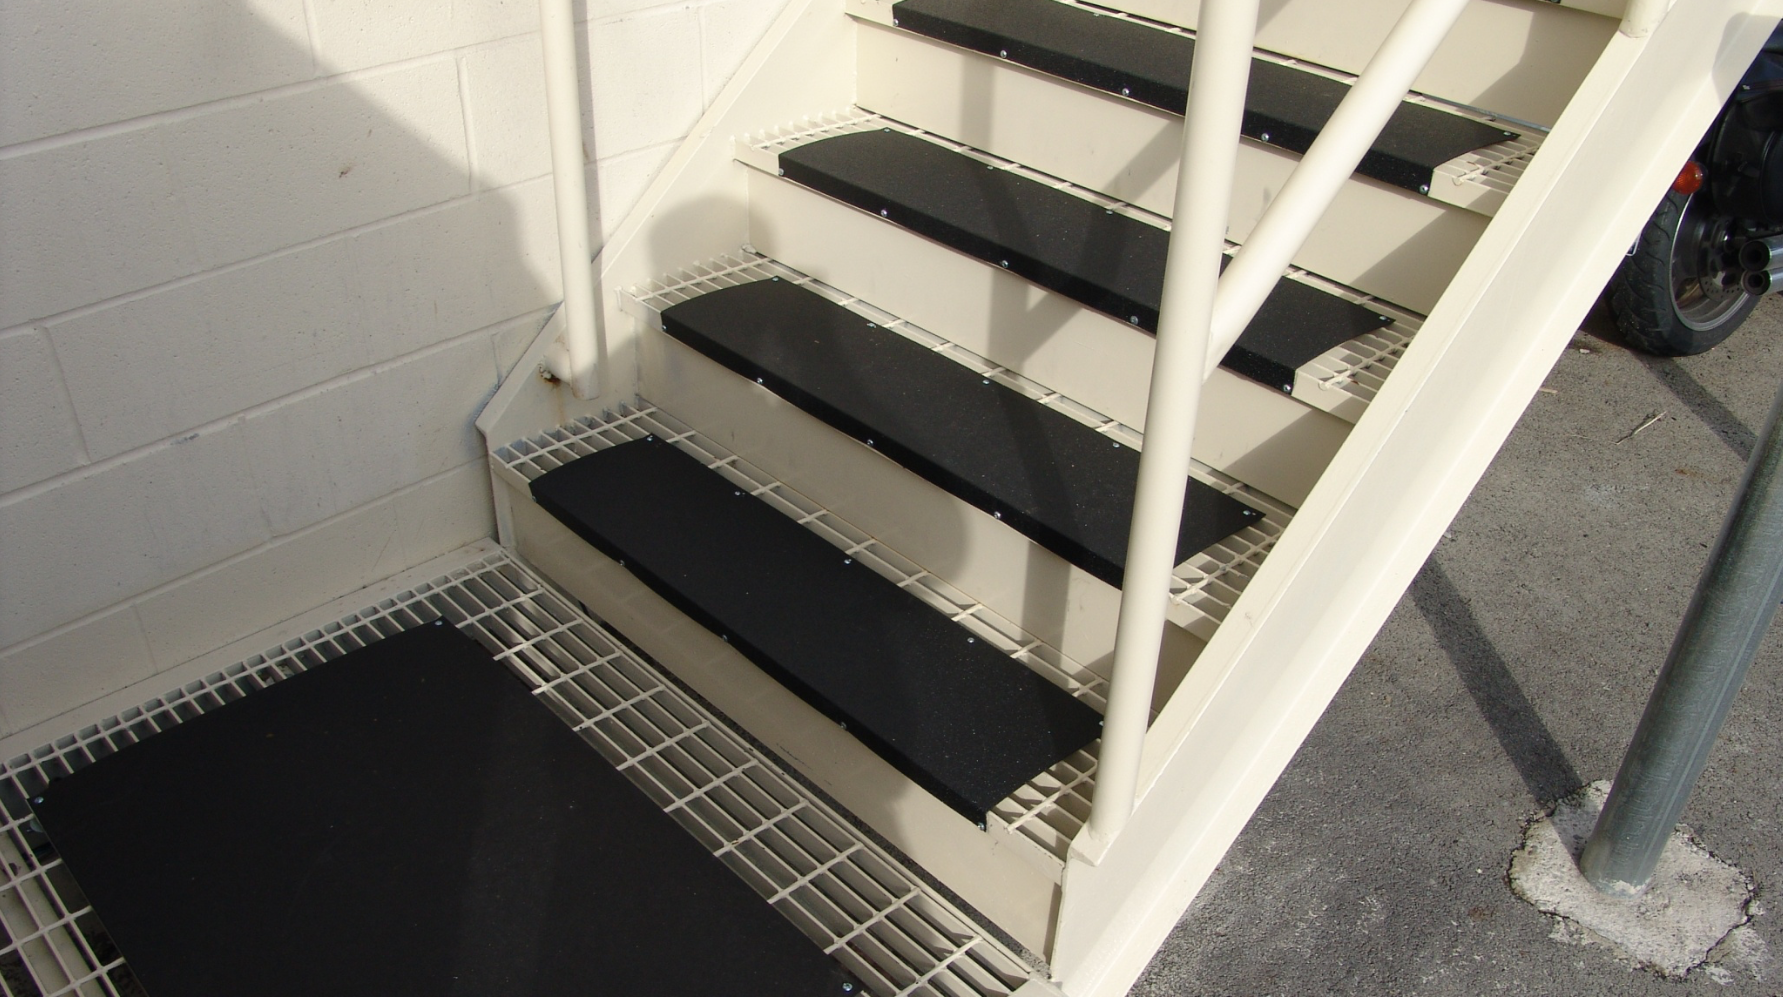 These Stairs Look Great To Have In The Winter Since They Re Heated It Would Eliminate The Chance Of Snow And Ice Form Commercial Stairs Outdoor Stairs Stairs